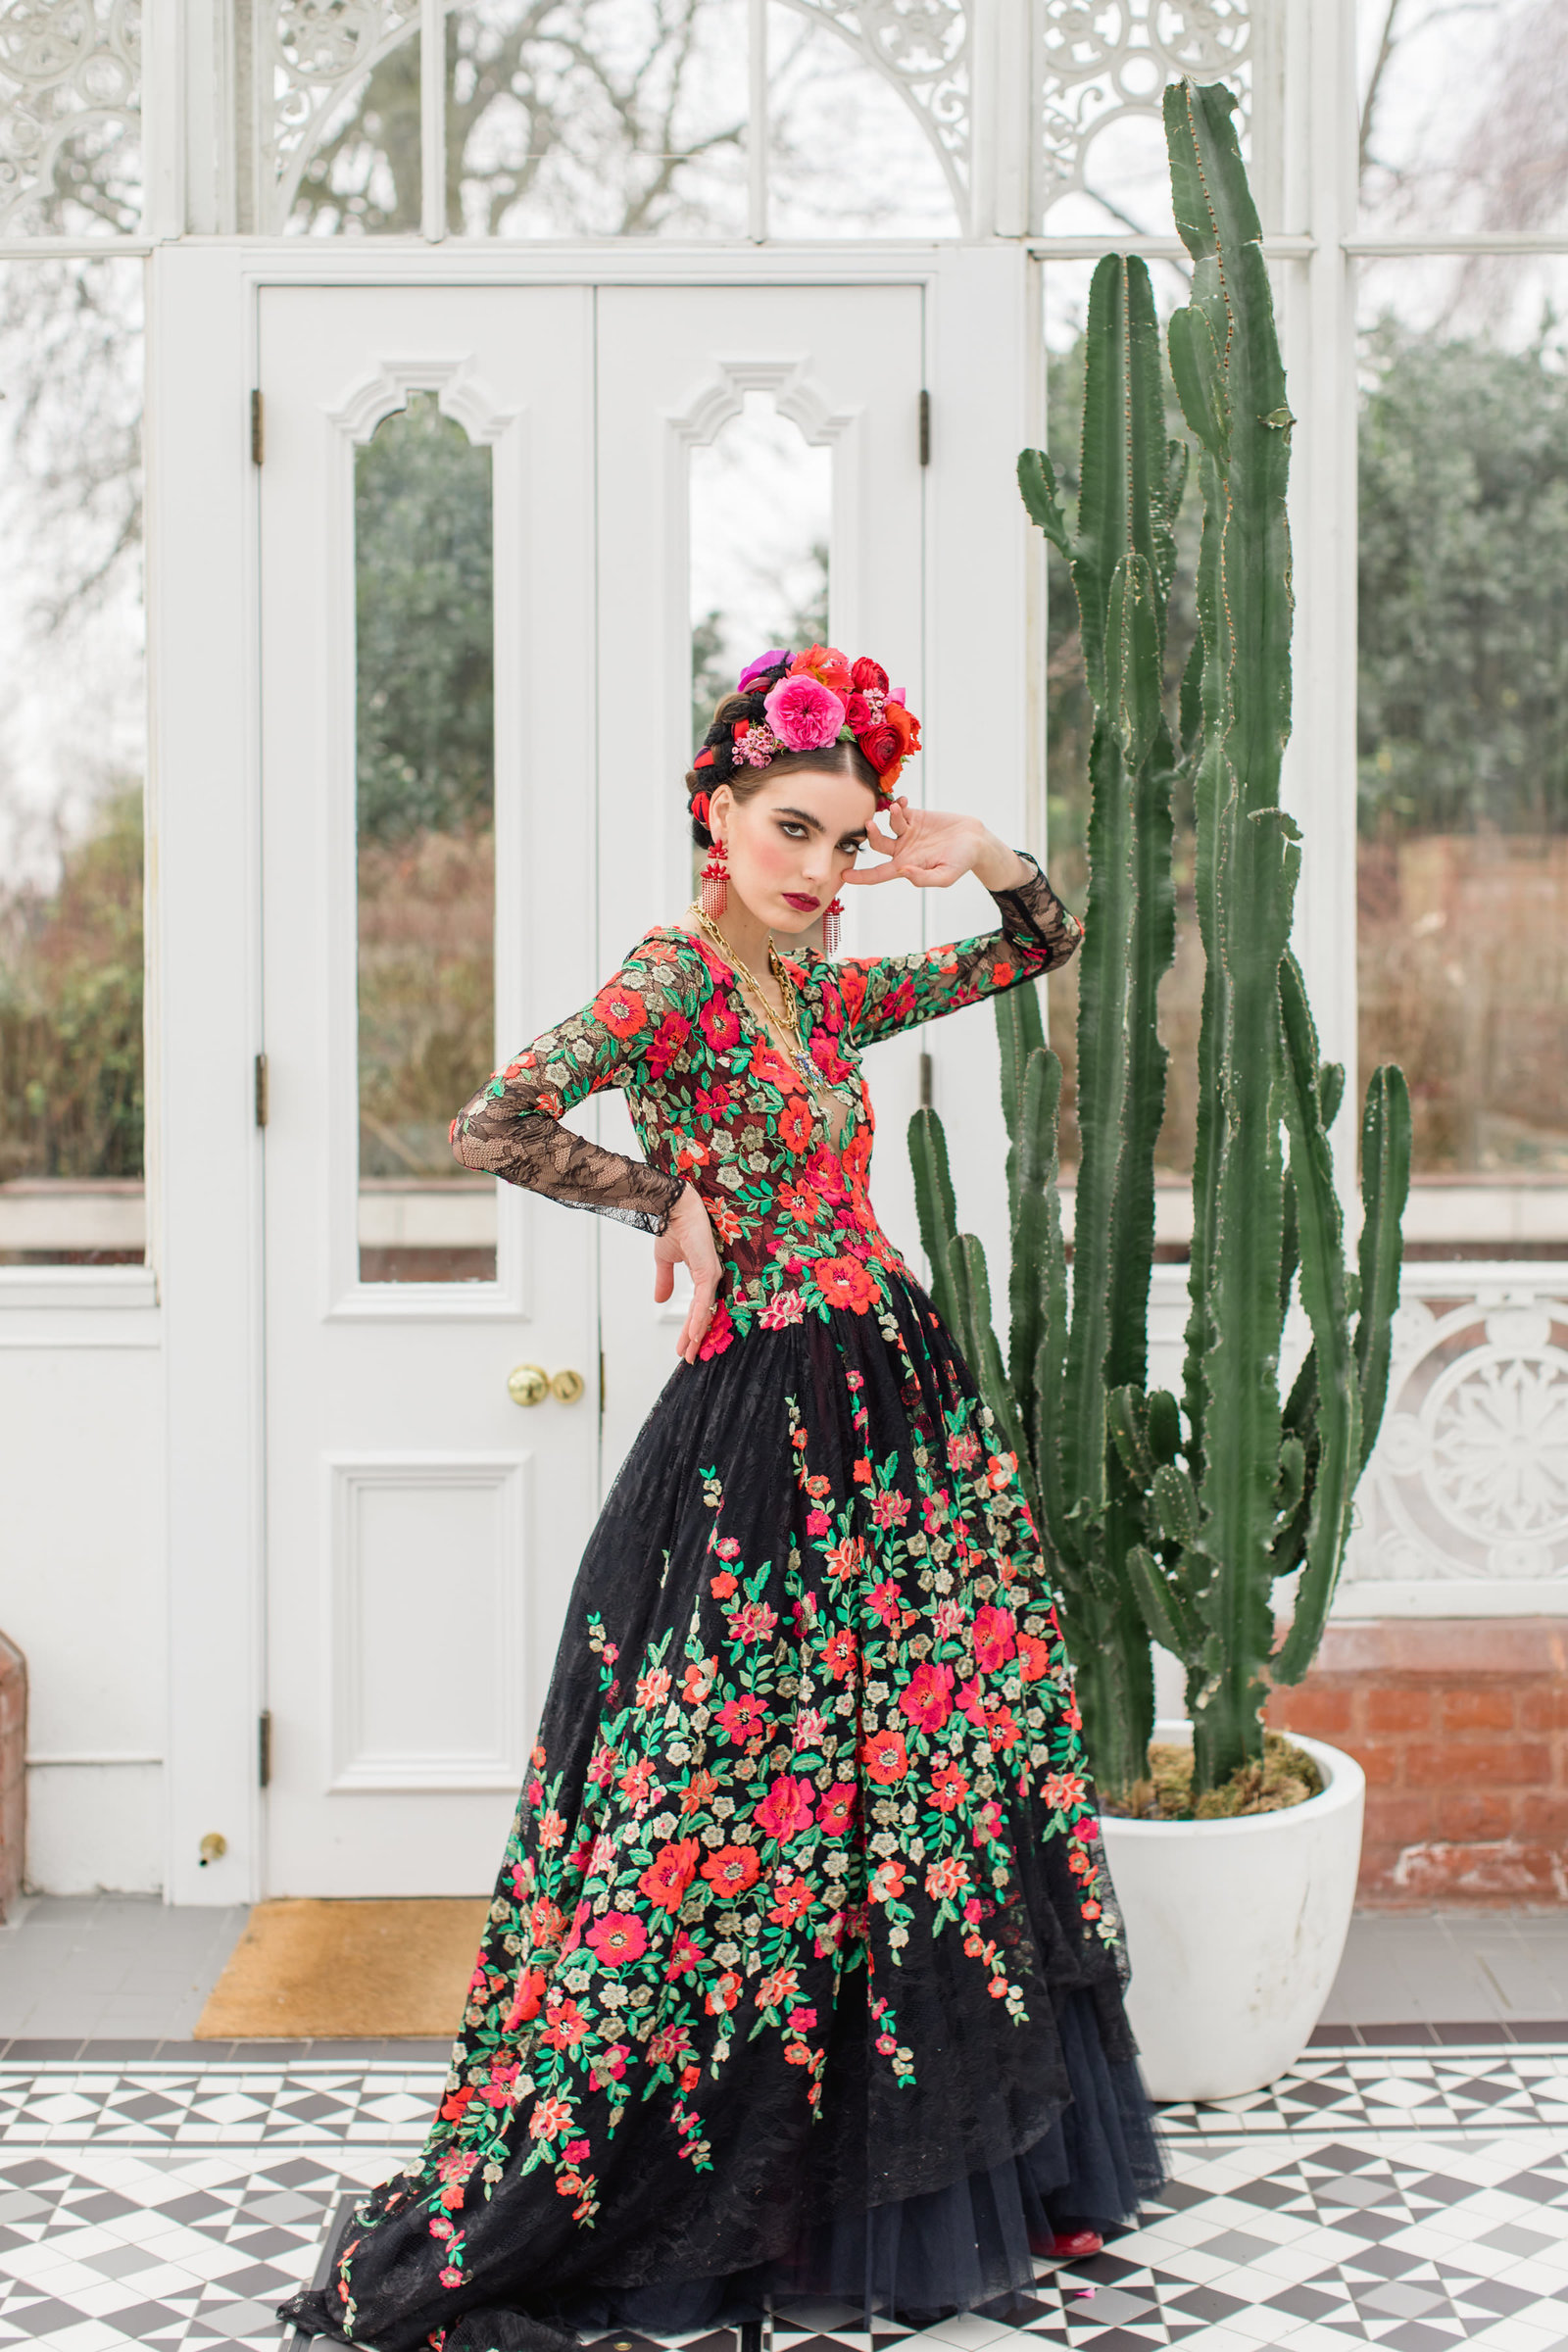 Frida-Kahlo-embroidered-floral-dress-JoanneFlemingDesign-RobertaFacchiniPhoto (49)